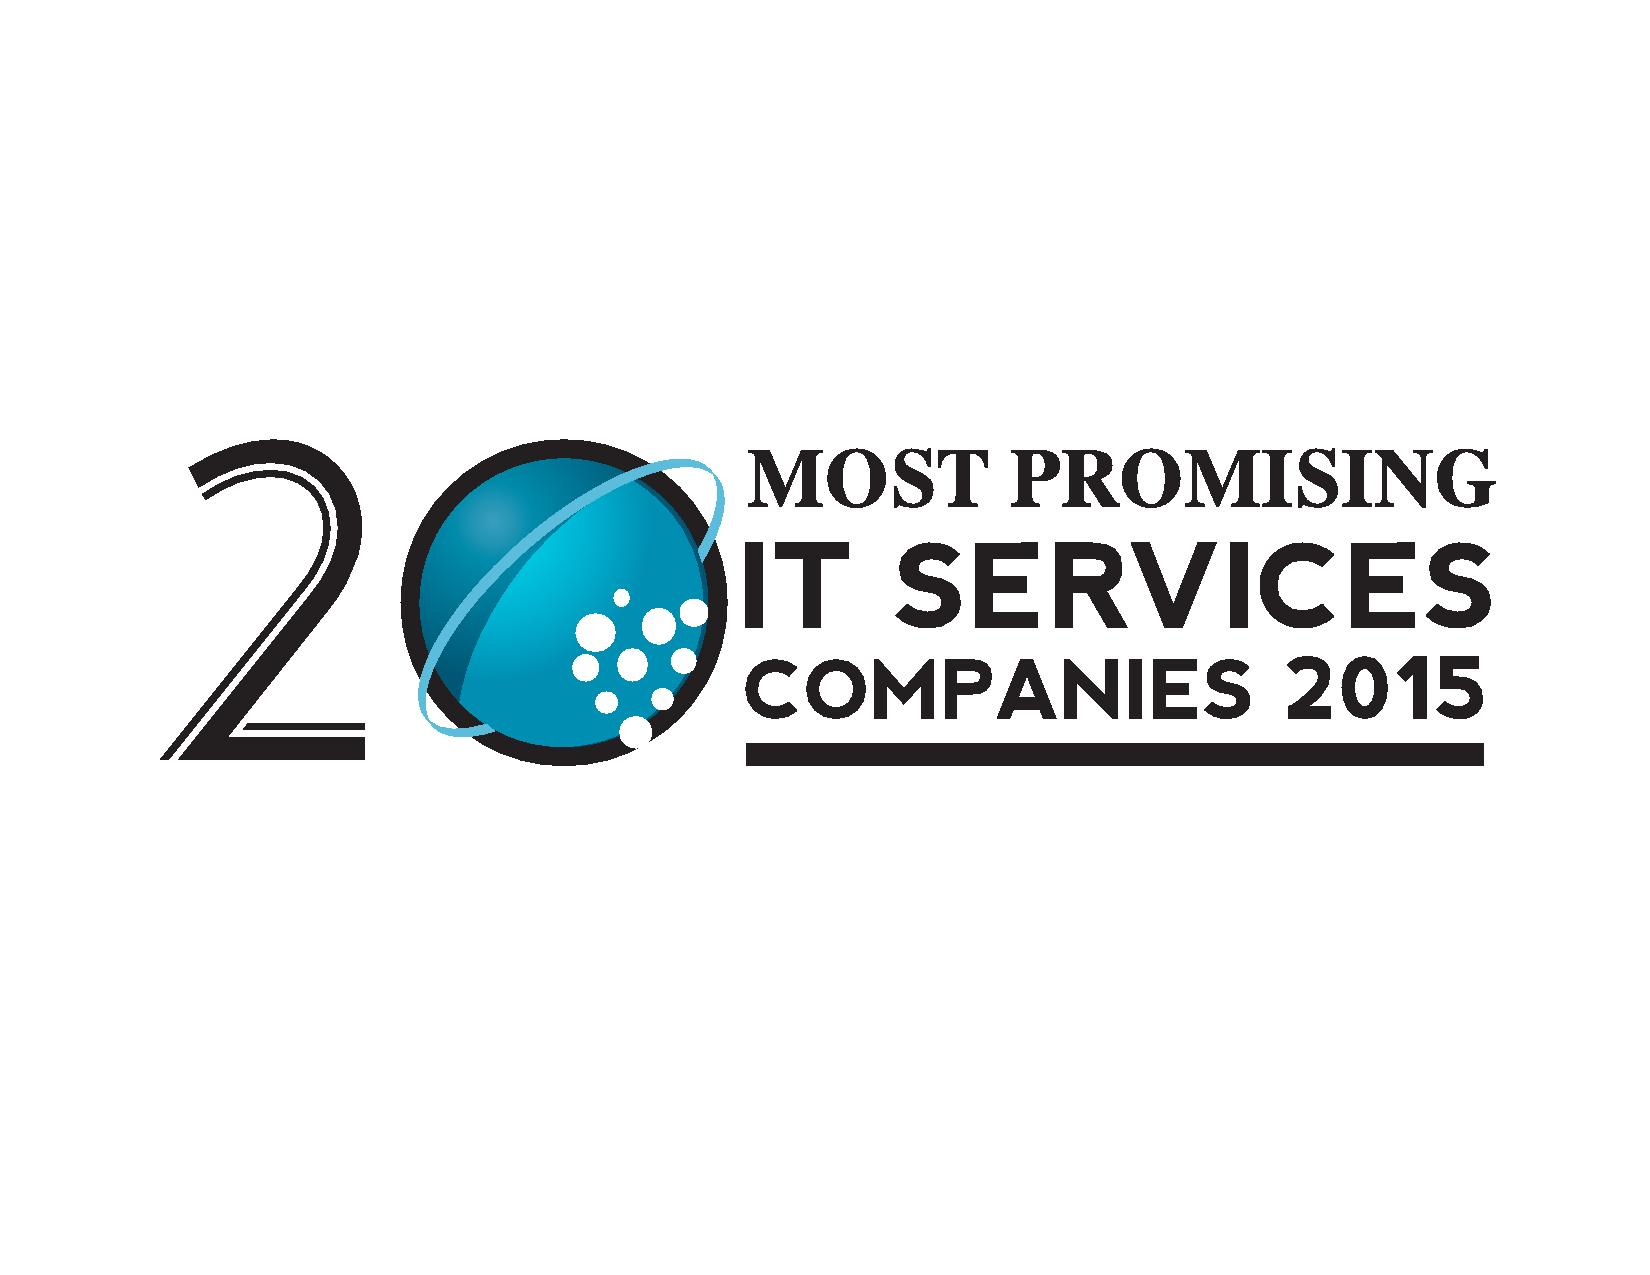 20 Most Promising IT Services Companies 2015